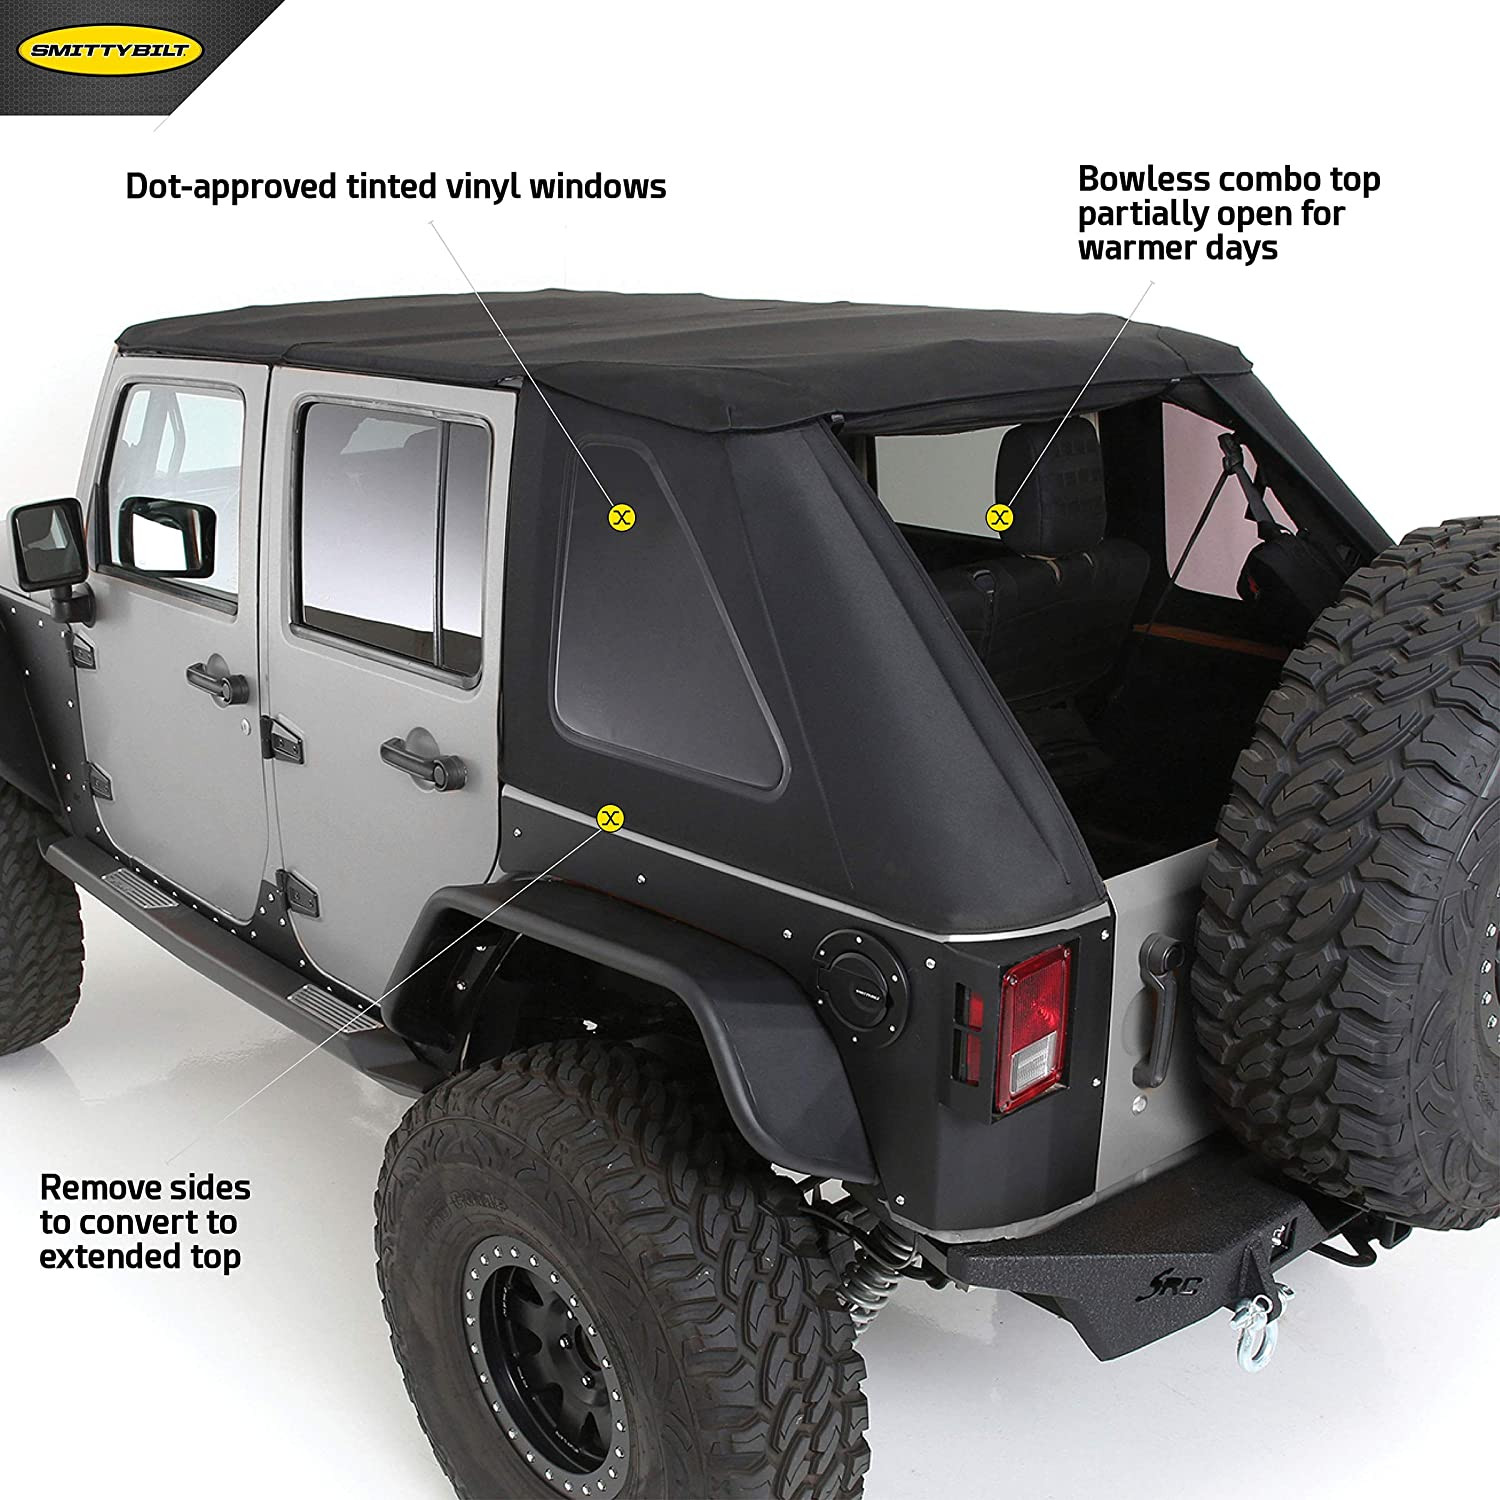 *CLEARANCE: SmittyBilt Bowless Combo  Top With Tinted Windows For 2007-18 Jeep Wrangler JK Unlimited 4 Door Models 9083135K